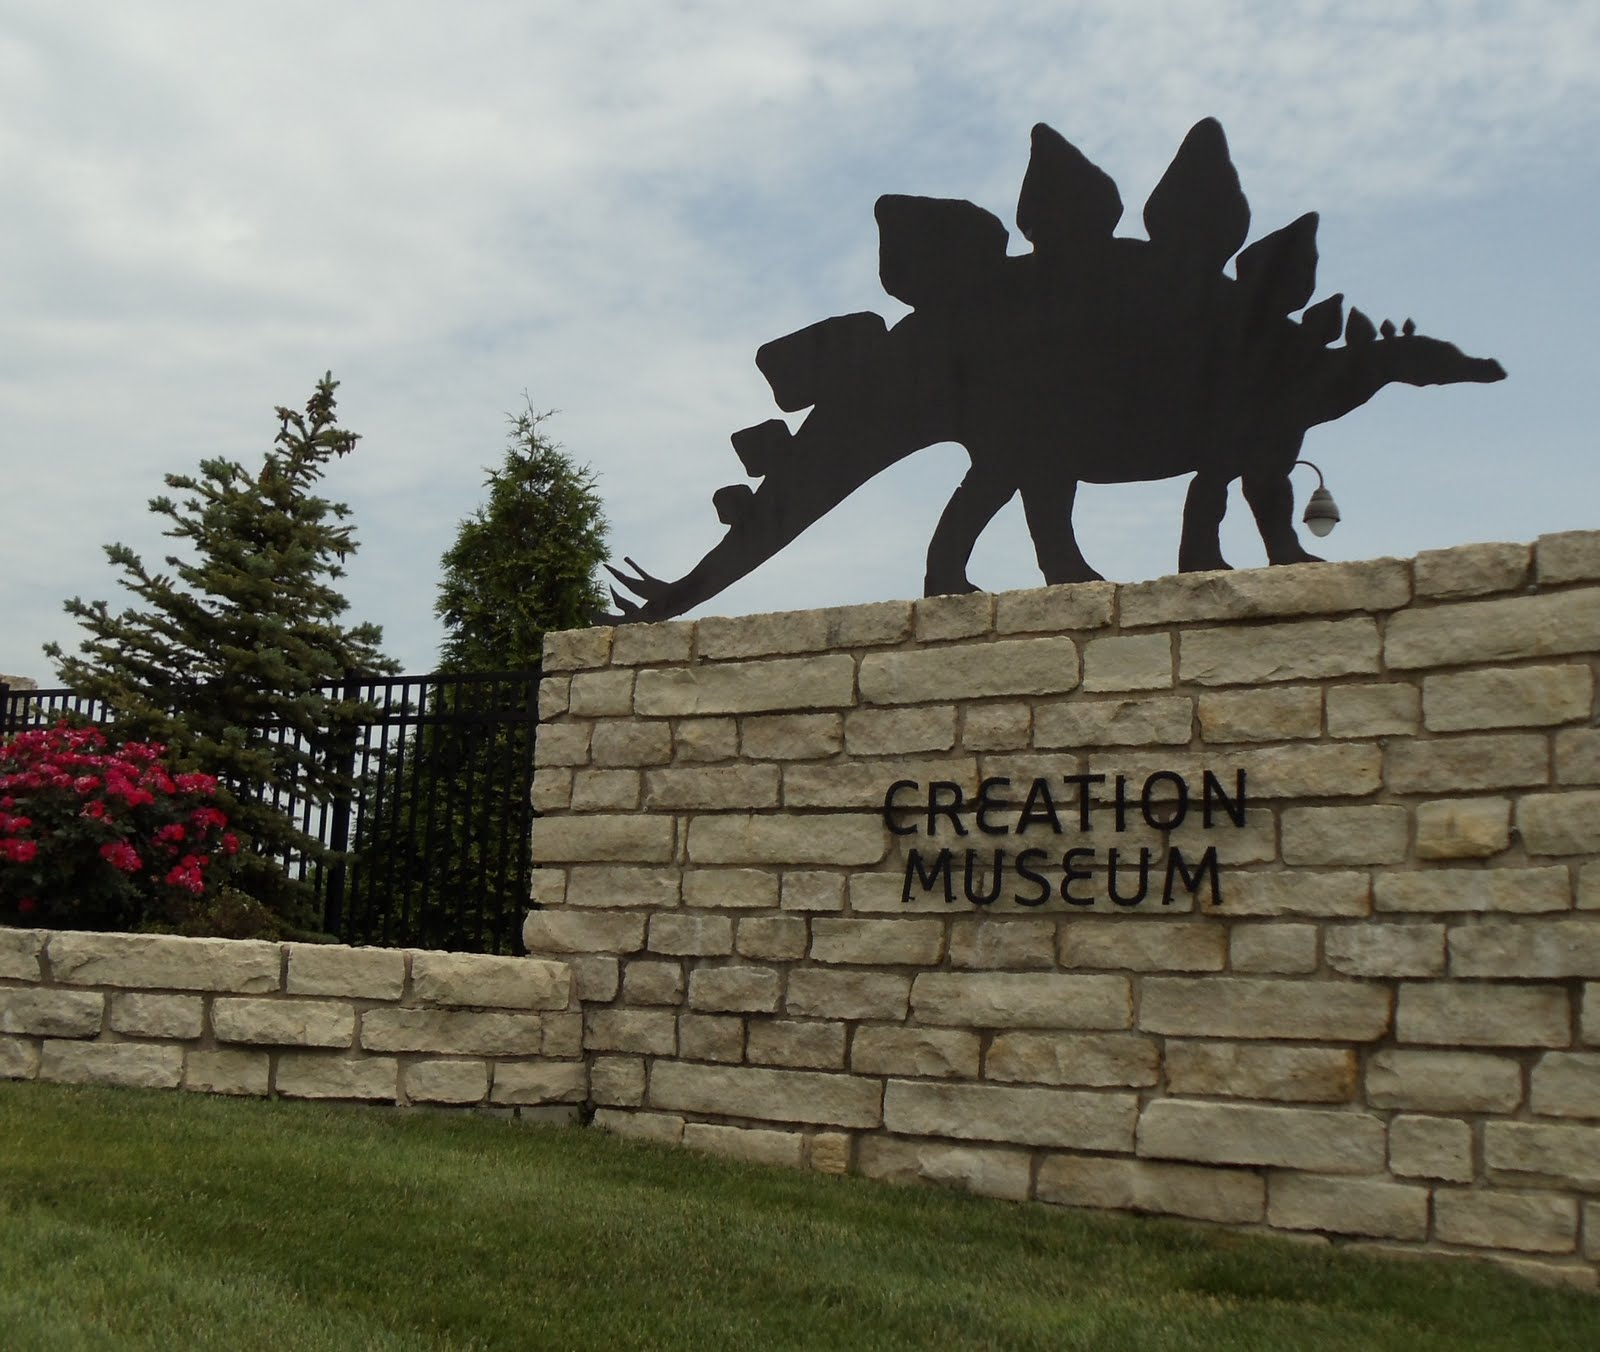 We're Headed to the Creation Museum